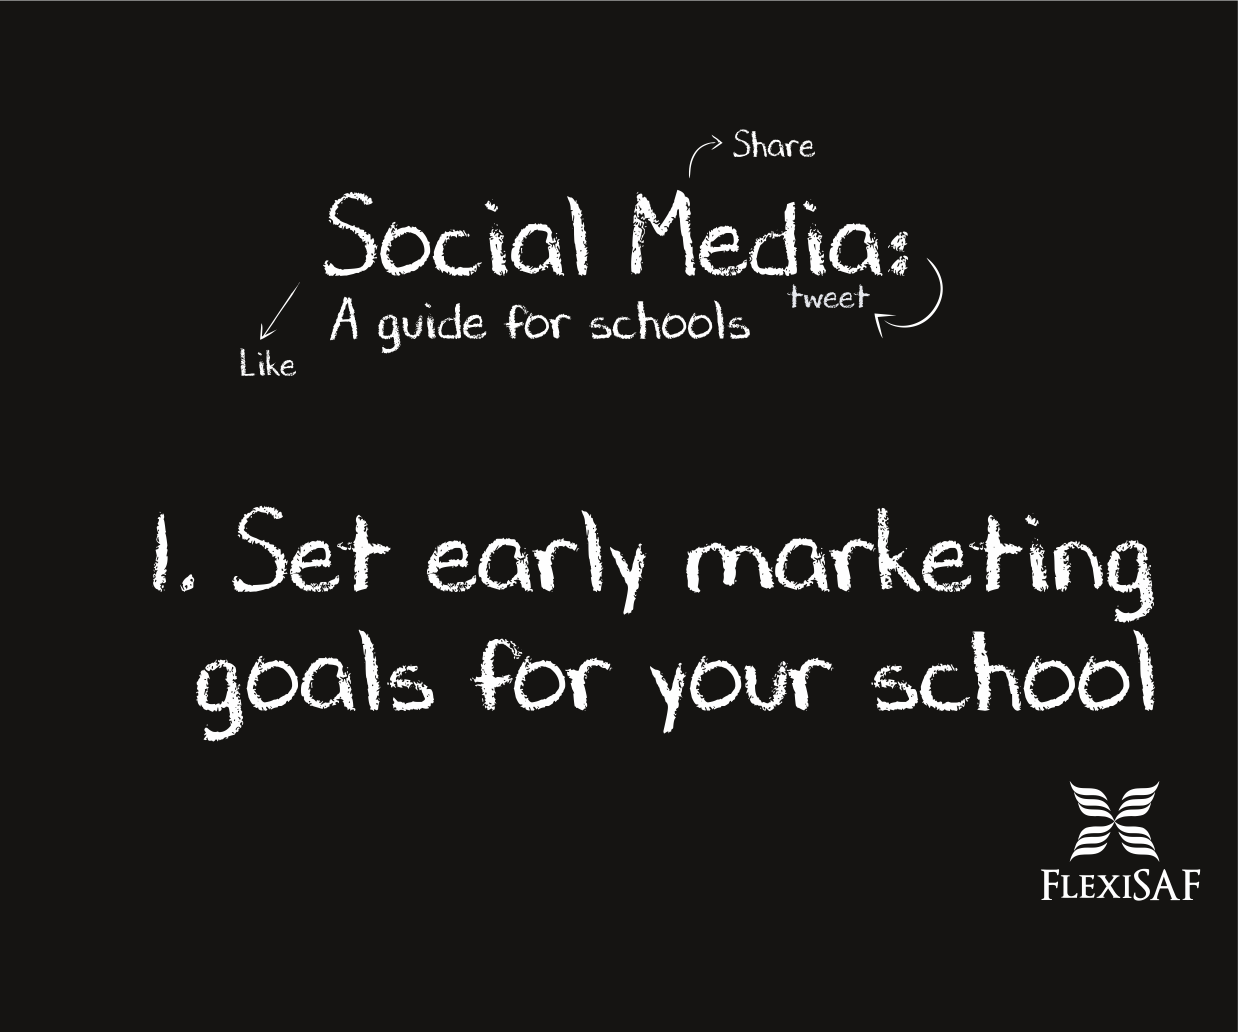 Set early marketing goals for your school